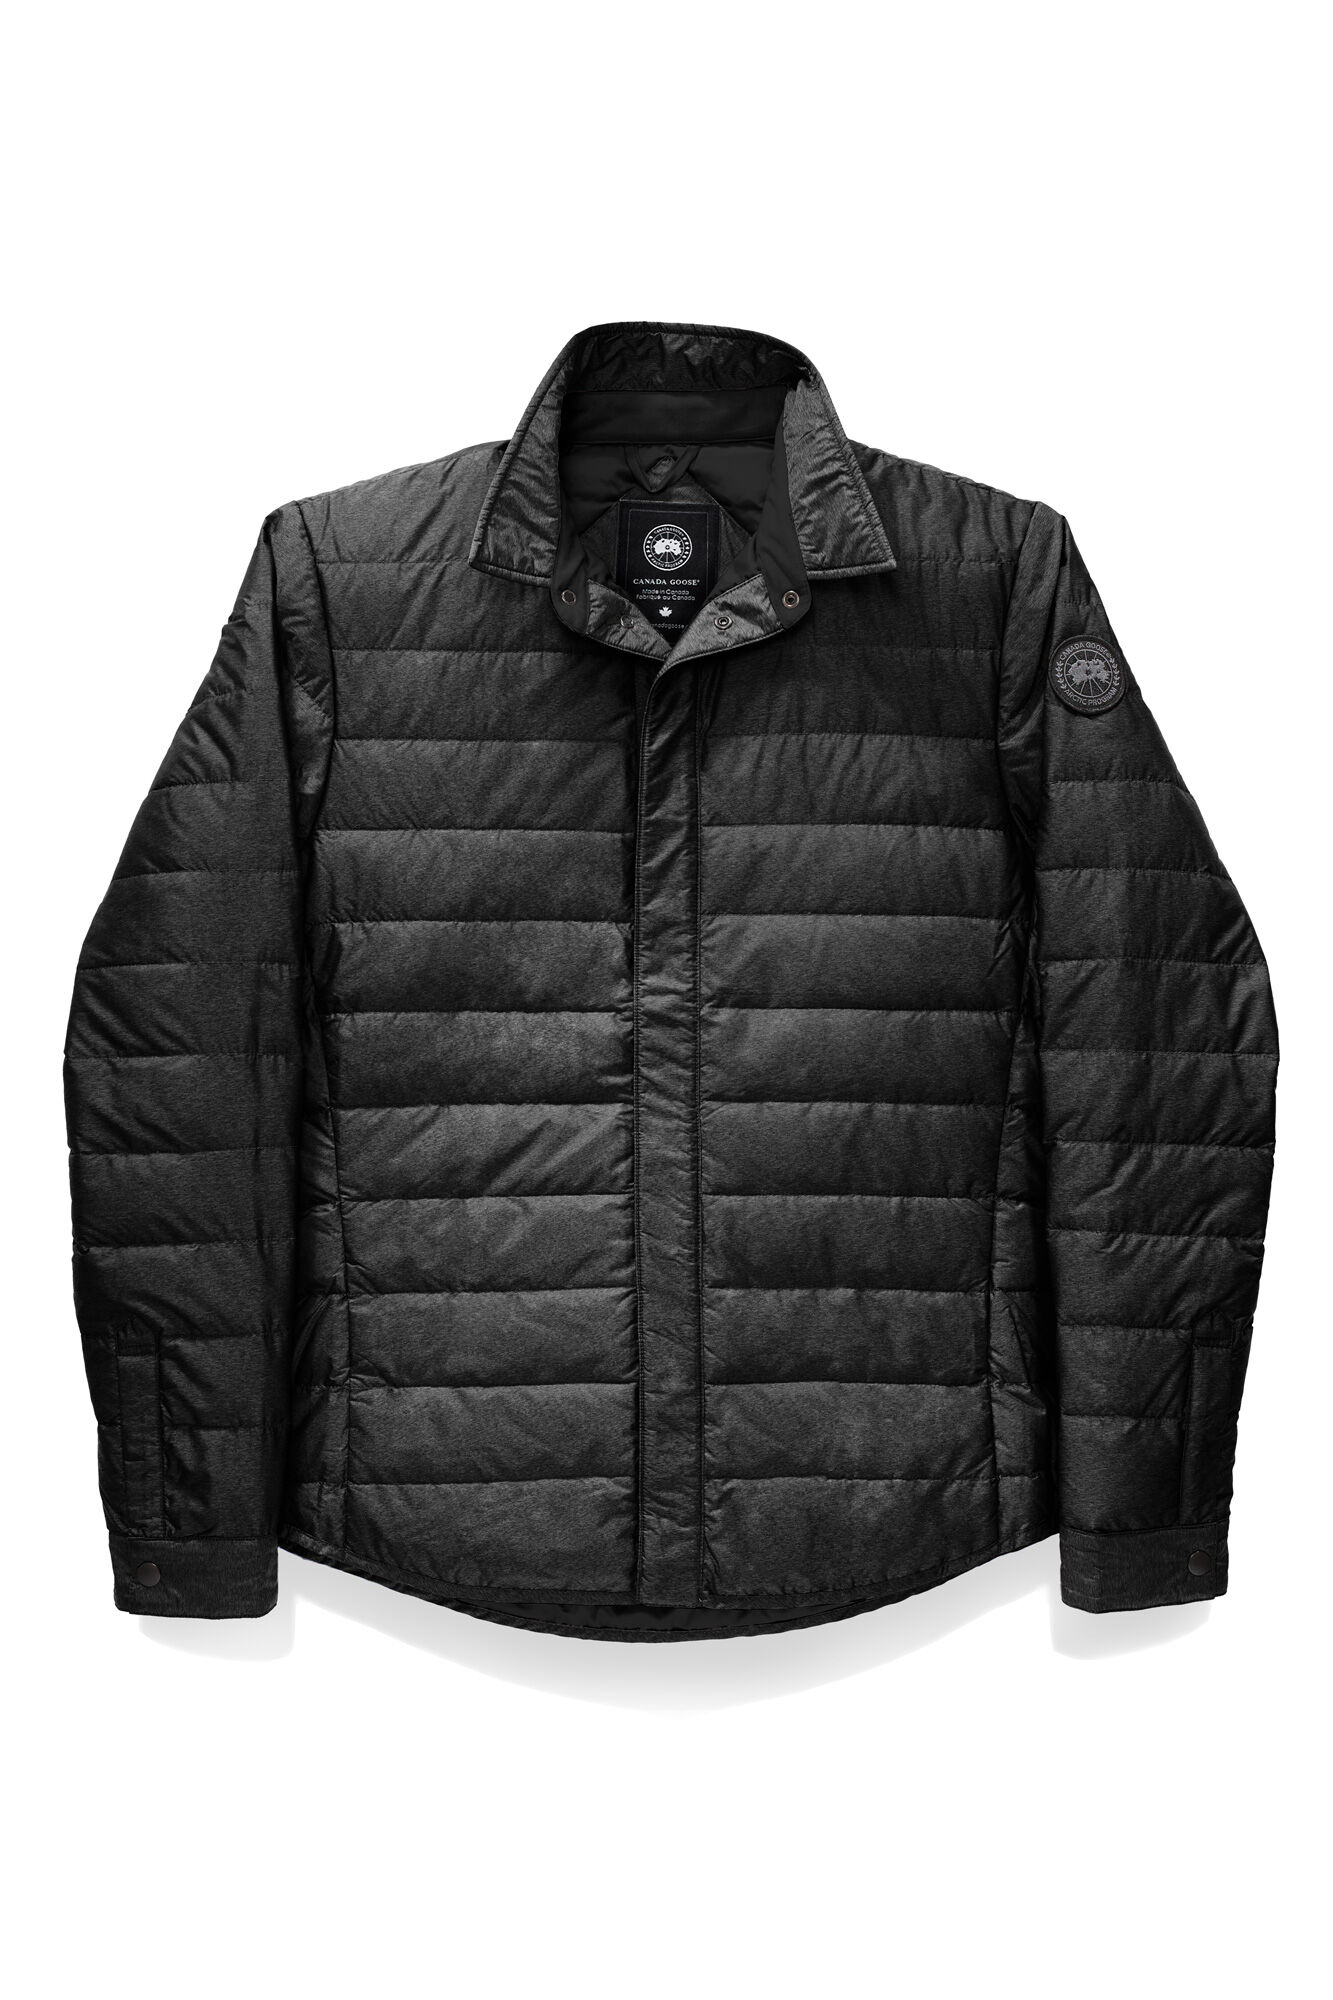 Black label grey jacket